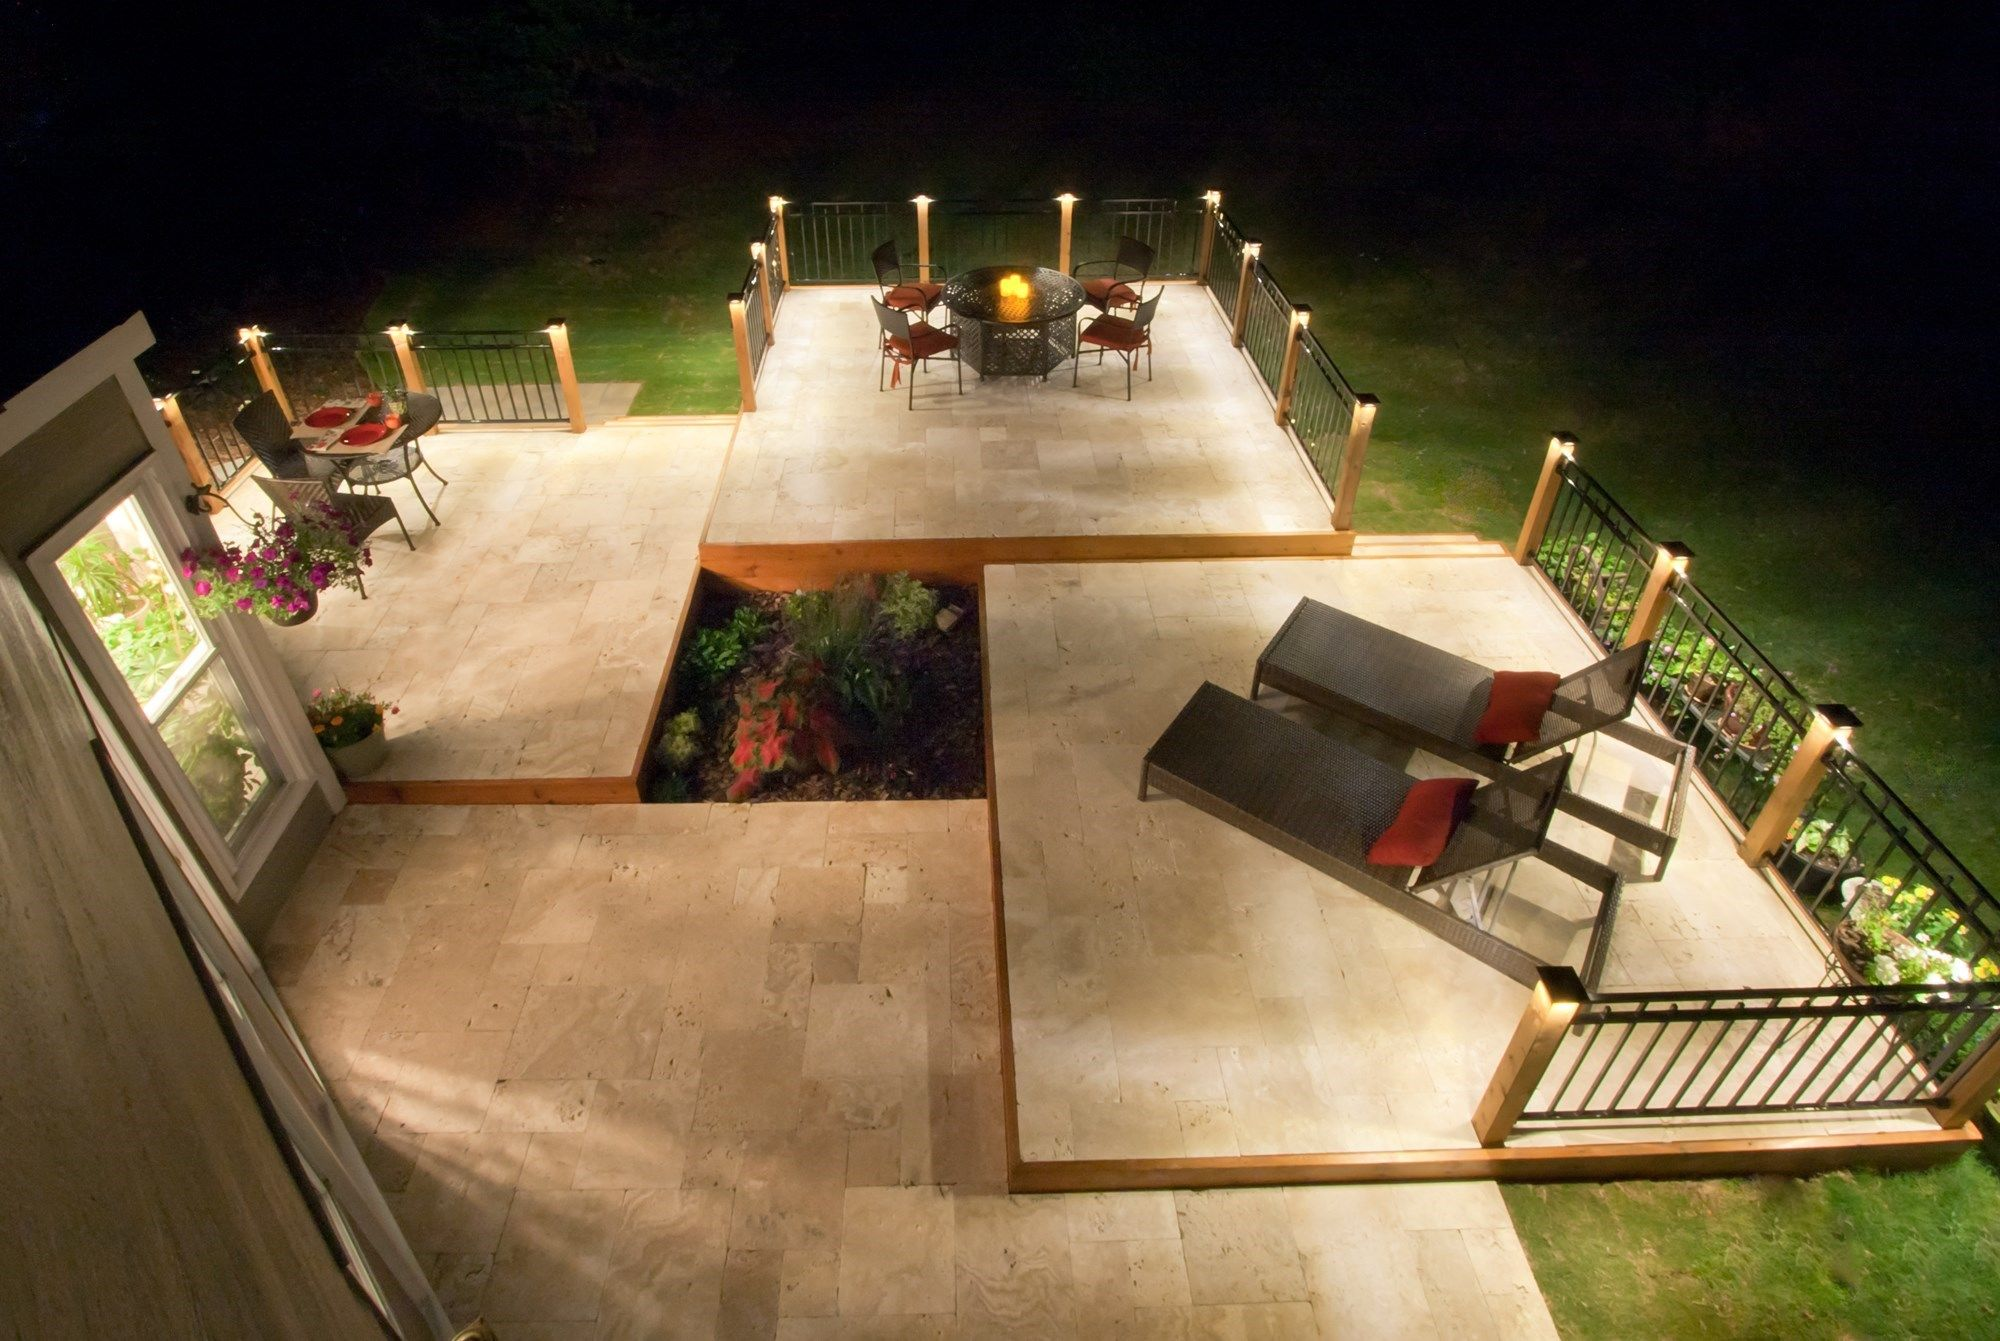 Can i lay tile over tile - Deck Additions Tile Deck You Can Install